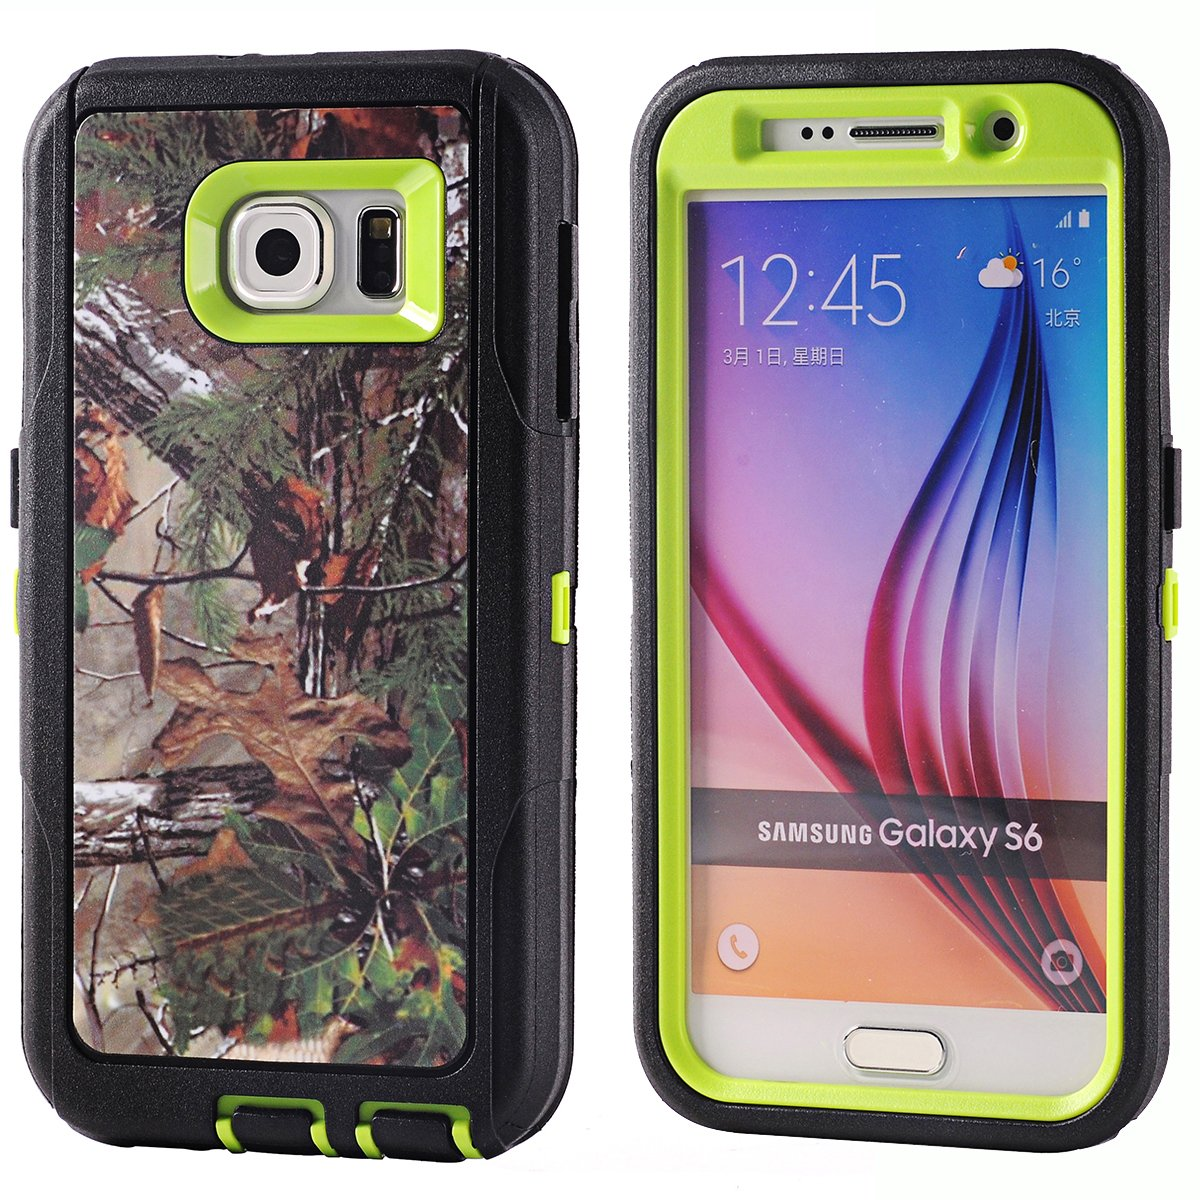 Keckotm Heavy Duty Defender 3 Layer Tough Rubber Lifeproof Samsung Galaxy S6 Fre Case 77 51242 Black Water Resistant Natural Tree Camo Rugged Silicon Impact Built In Screen Protector Hybrid W Camouflage Wood Design For Att